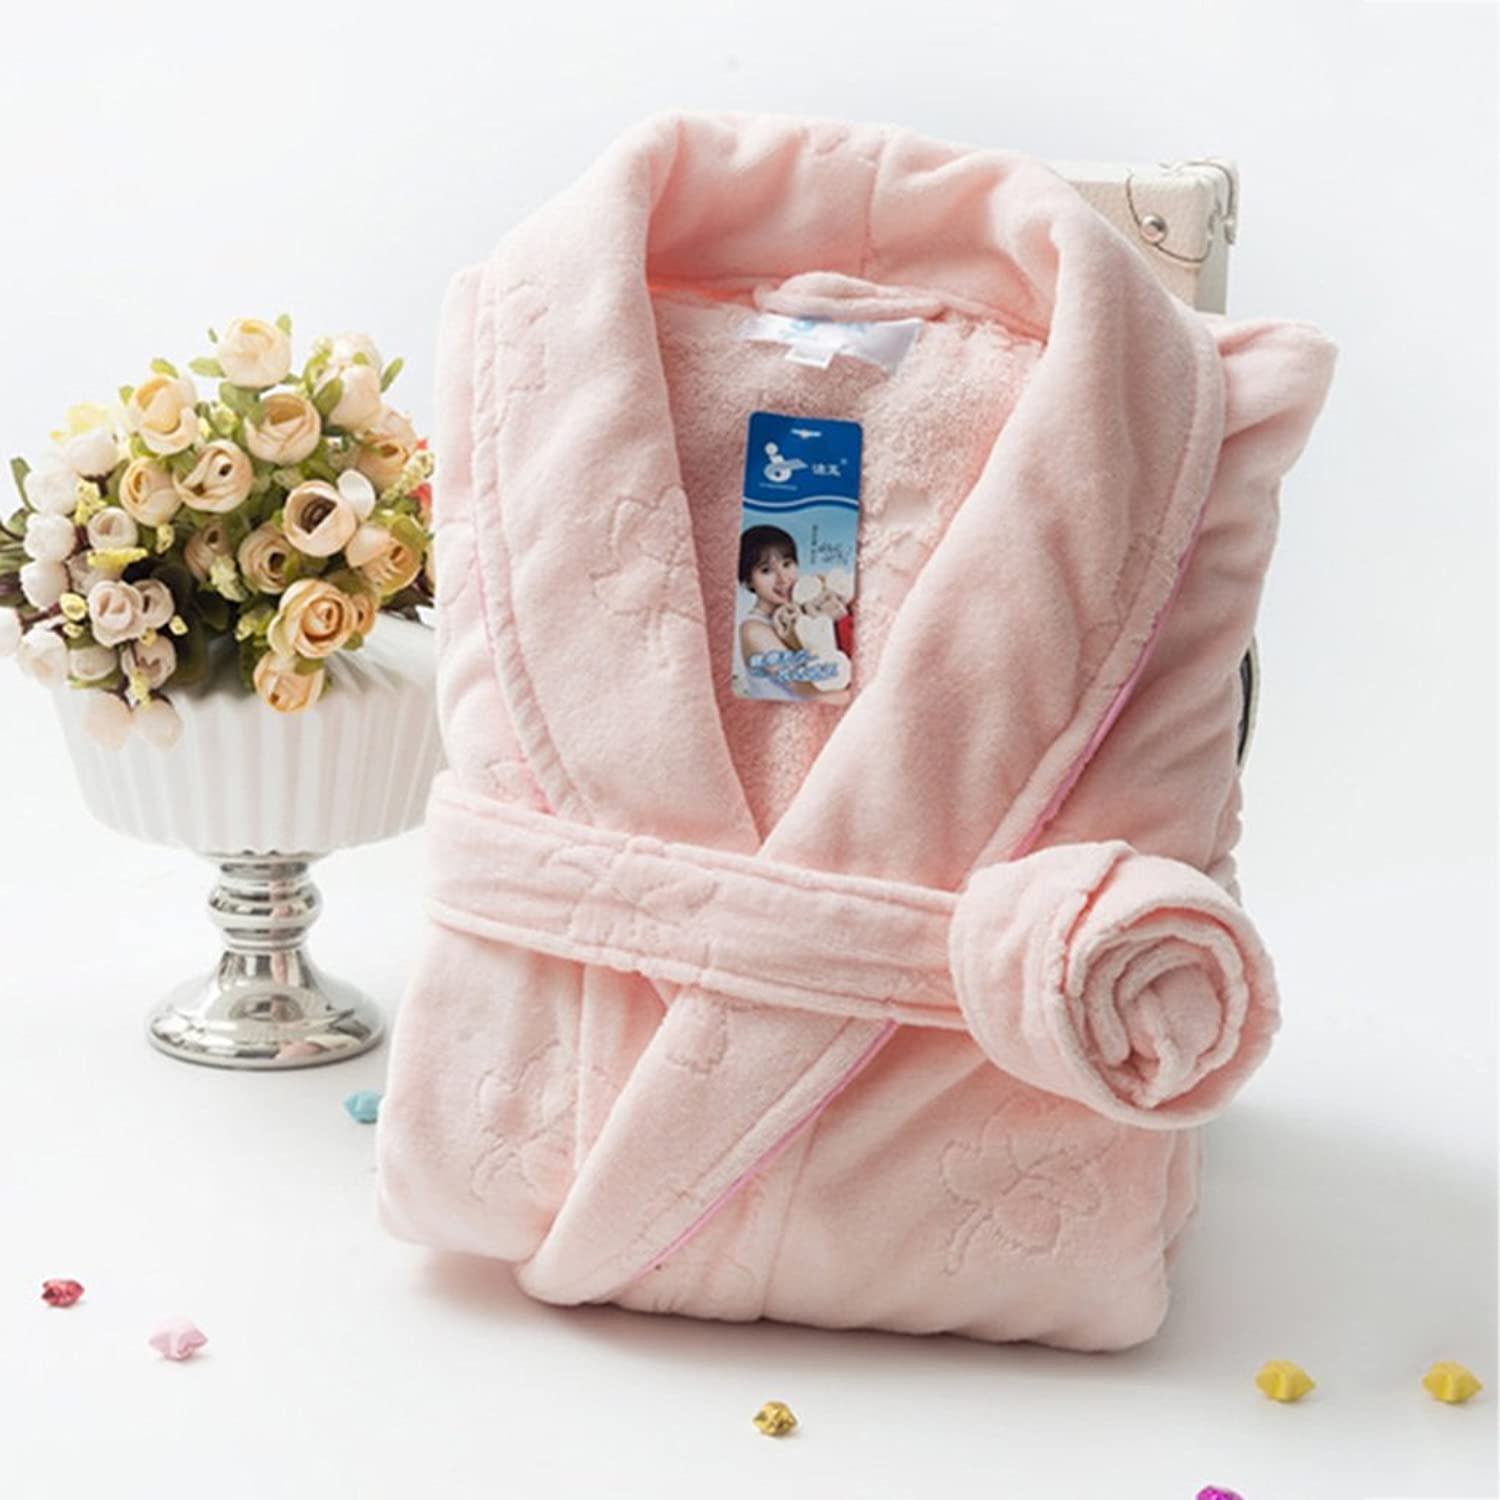 GJM Shop Cotton Towel Material Pajamas Thickening Keep Warm Adult Bathrobe Couple Models Nightgown Home Clothes (color   2)